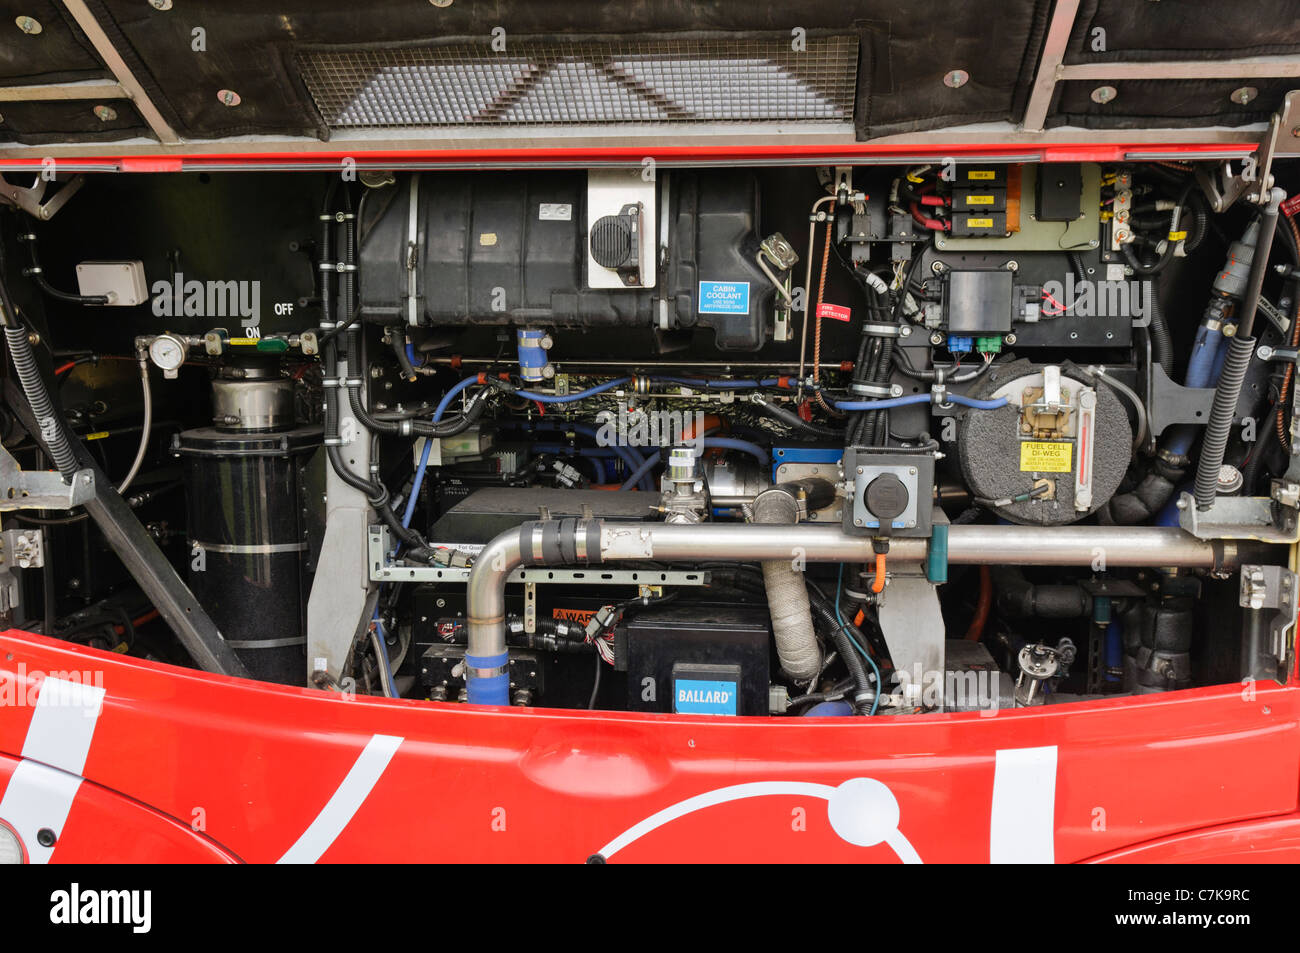 Inside the engine compartment of a Transport for London hydrogen